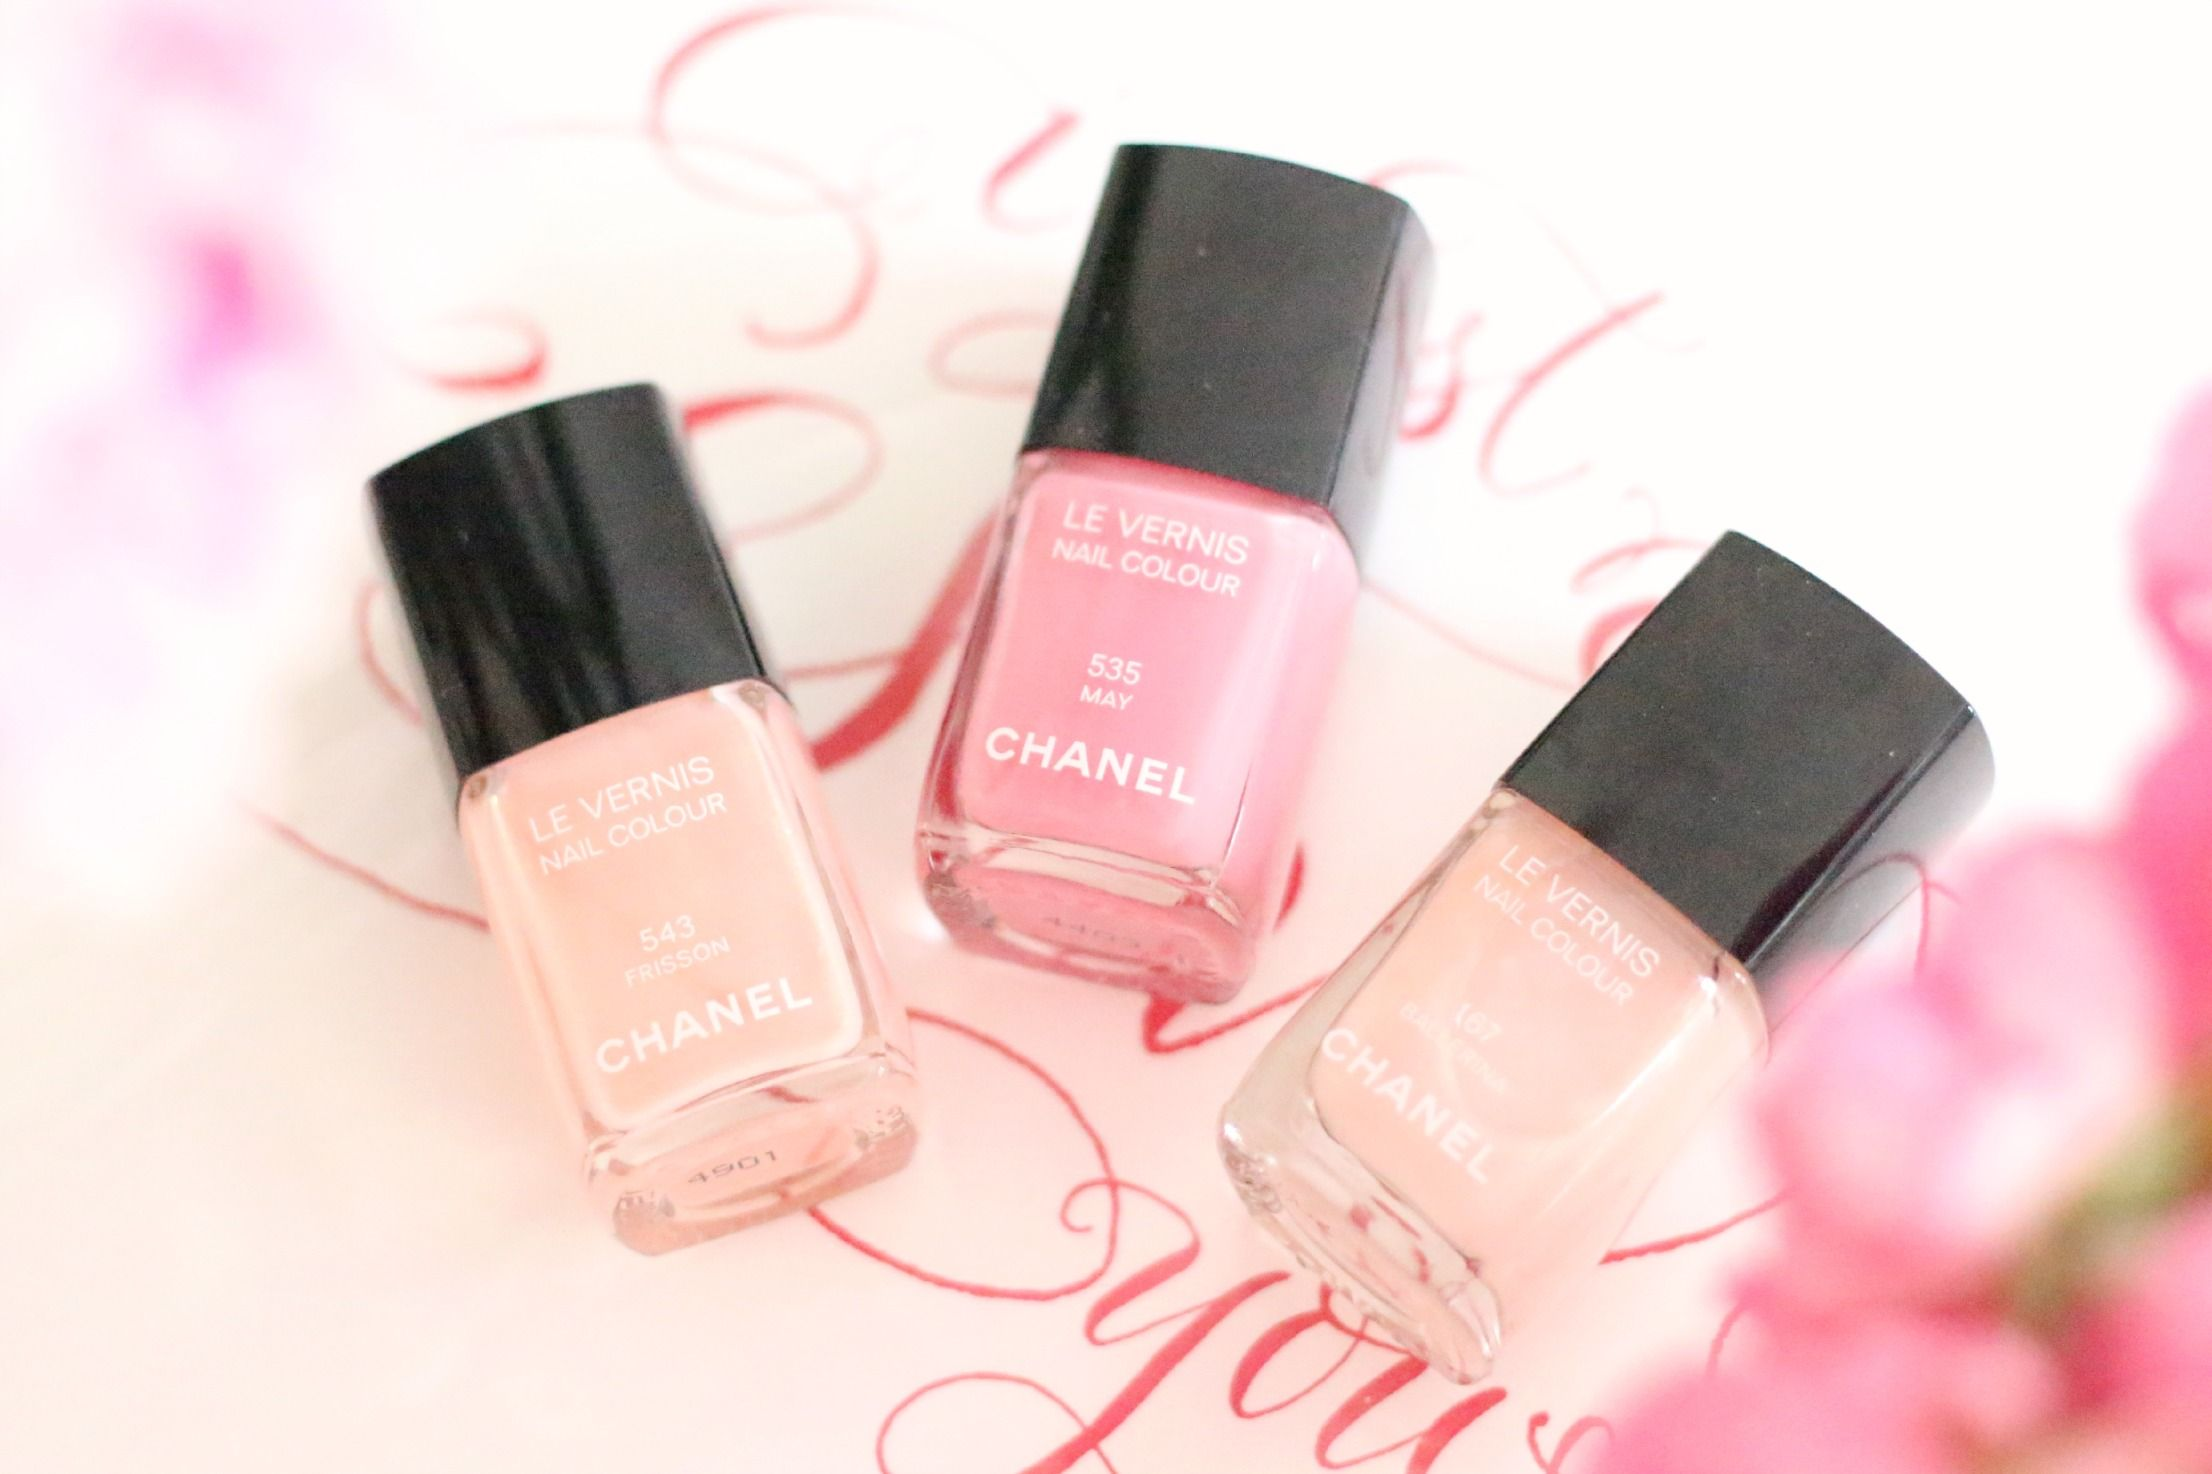 The perfect pink Chanel polish